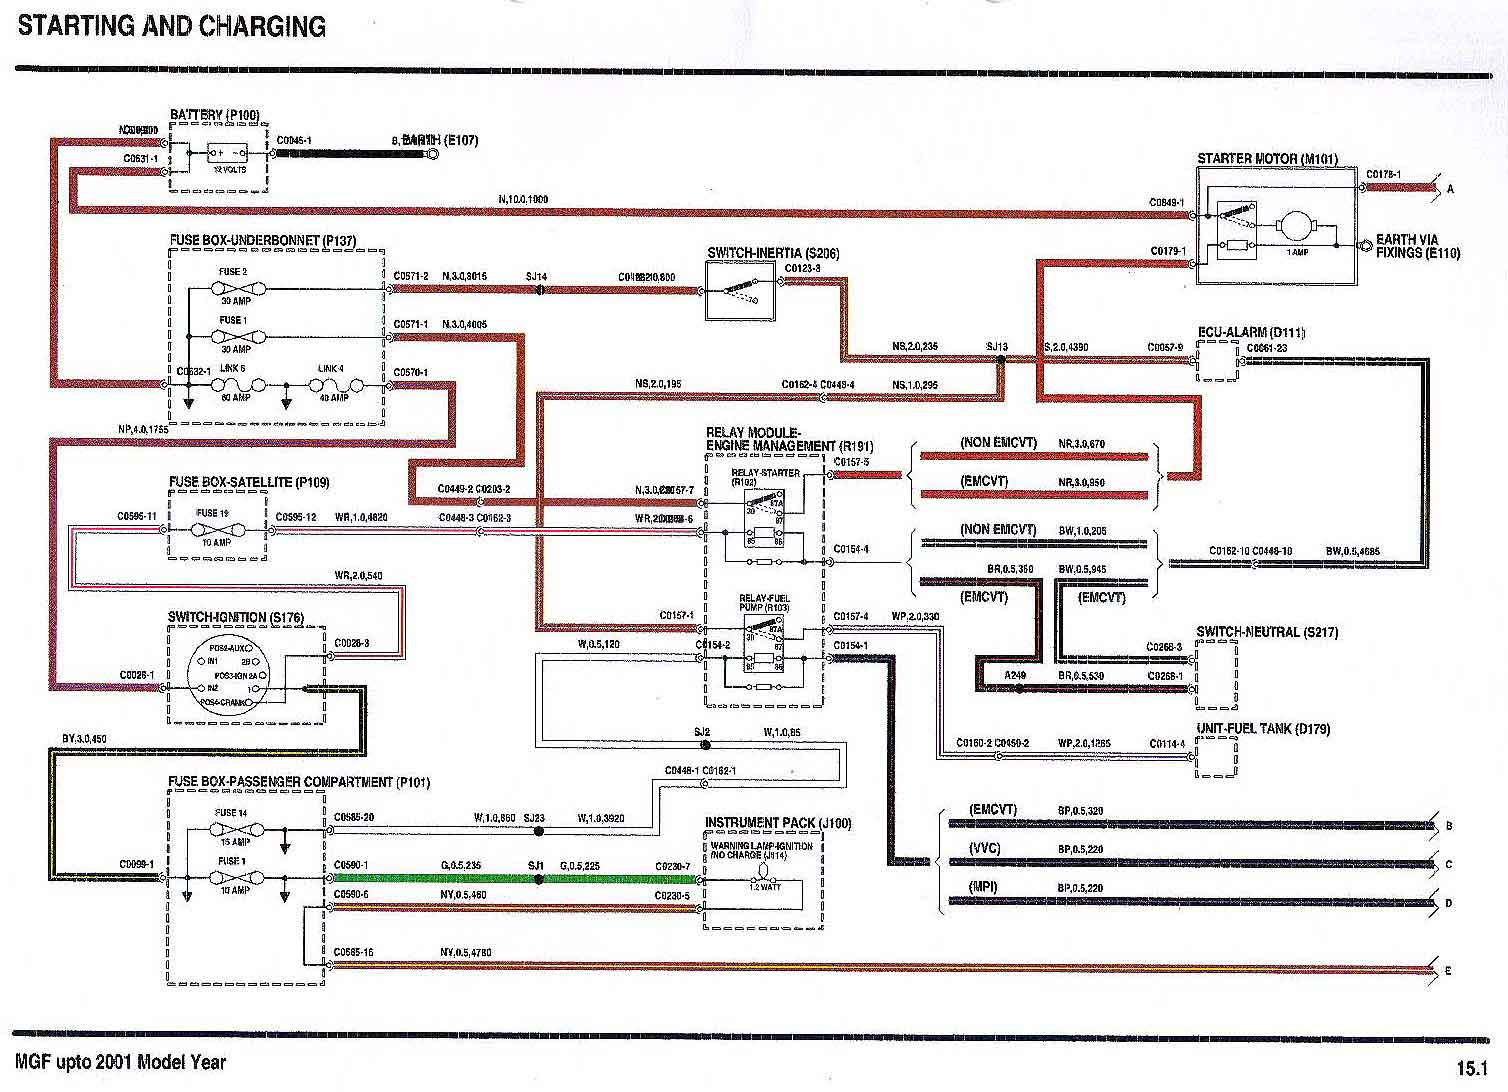 Mgf Wiring Diagram Simple Options Basic Electrical Symbols Circuits Schematic Circuit